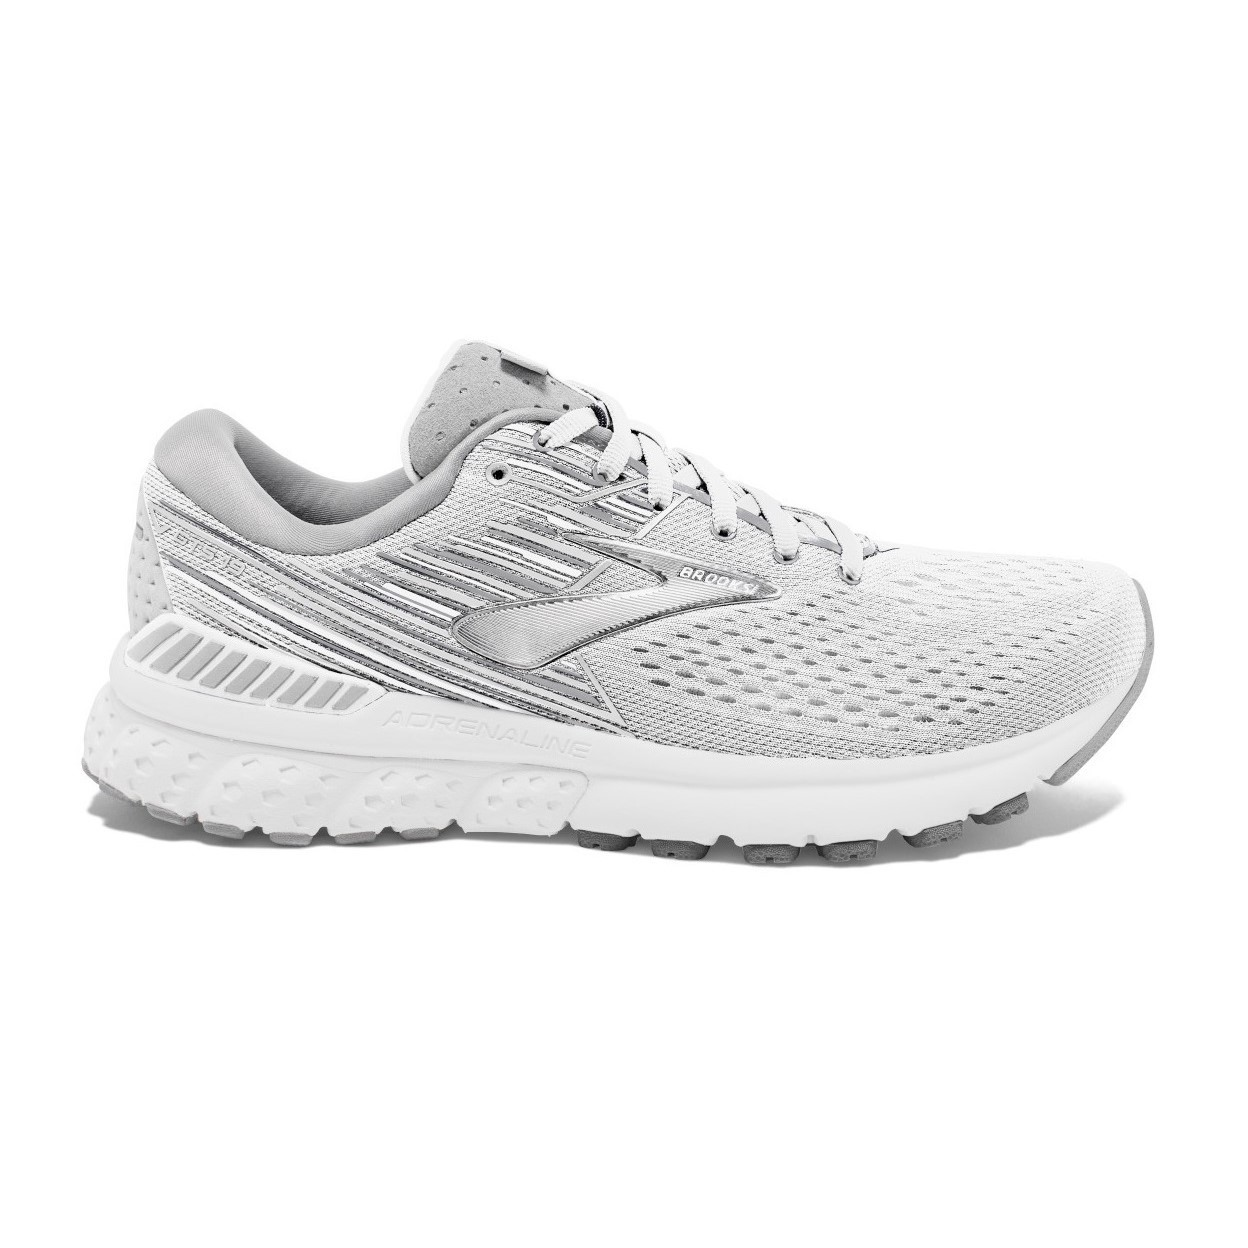 1e8455aaa77dd Brooks Adrenaline GTS 19 - Womens Running Shoes - White Grey ...